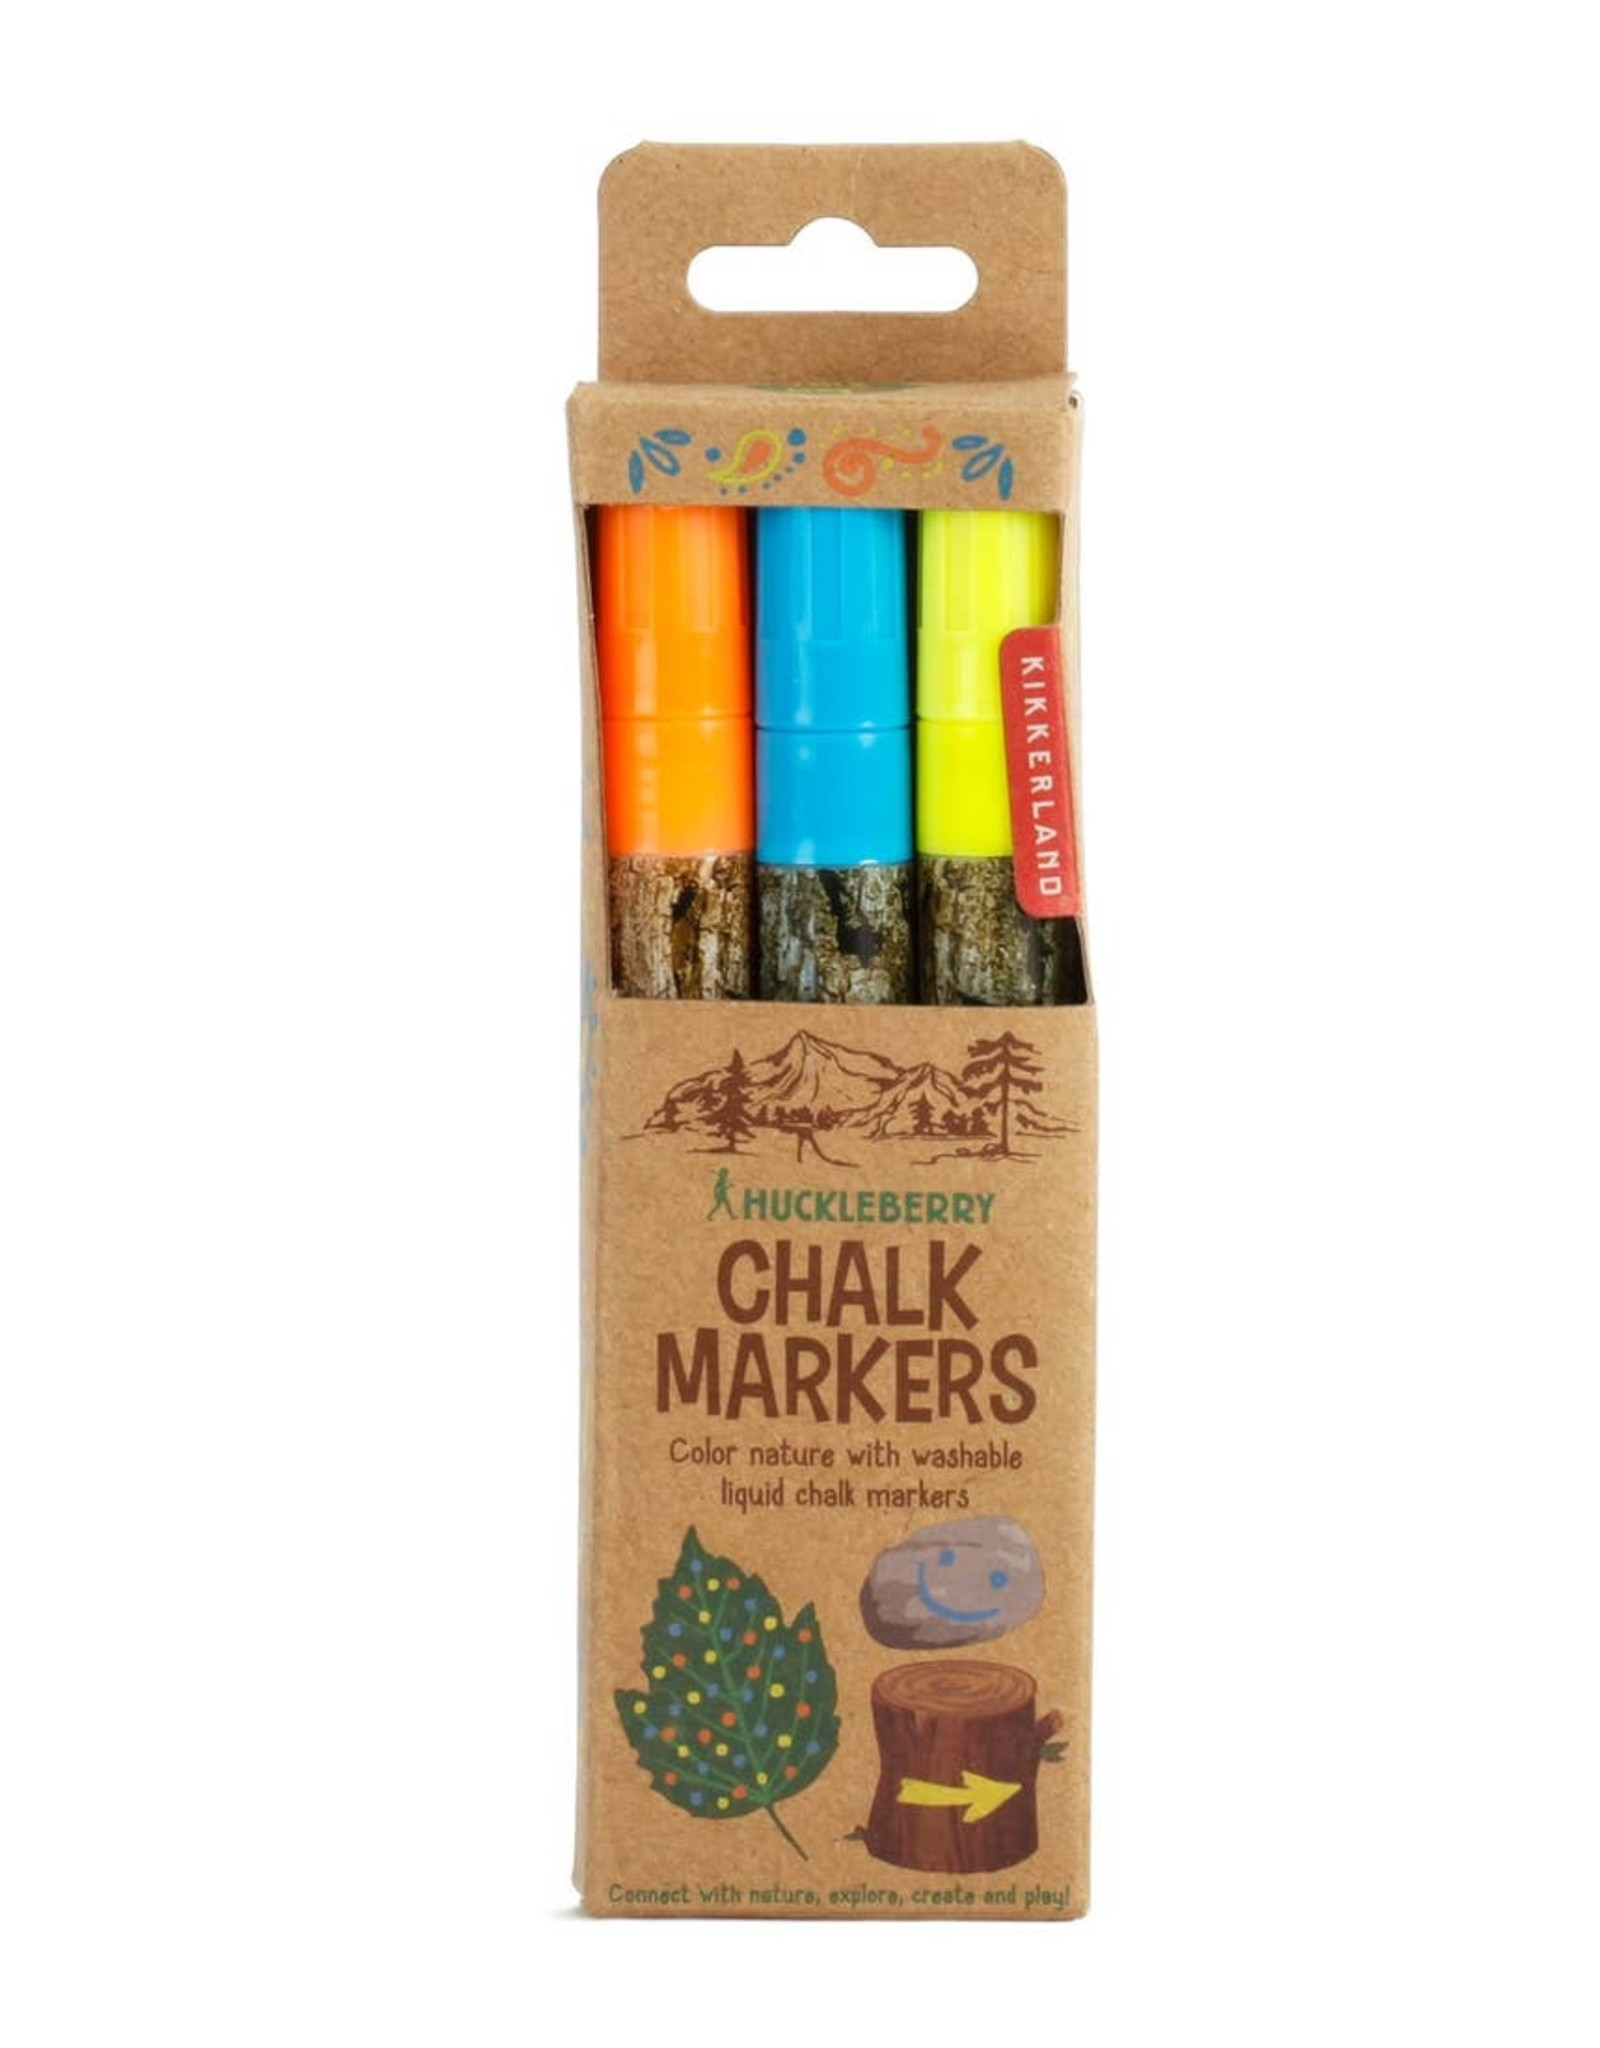 huckleberry by kirkland Huckleberry Chalk Markers